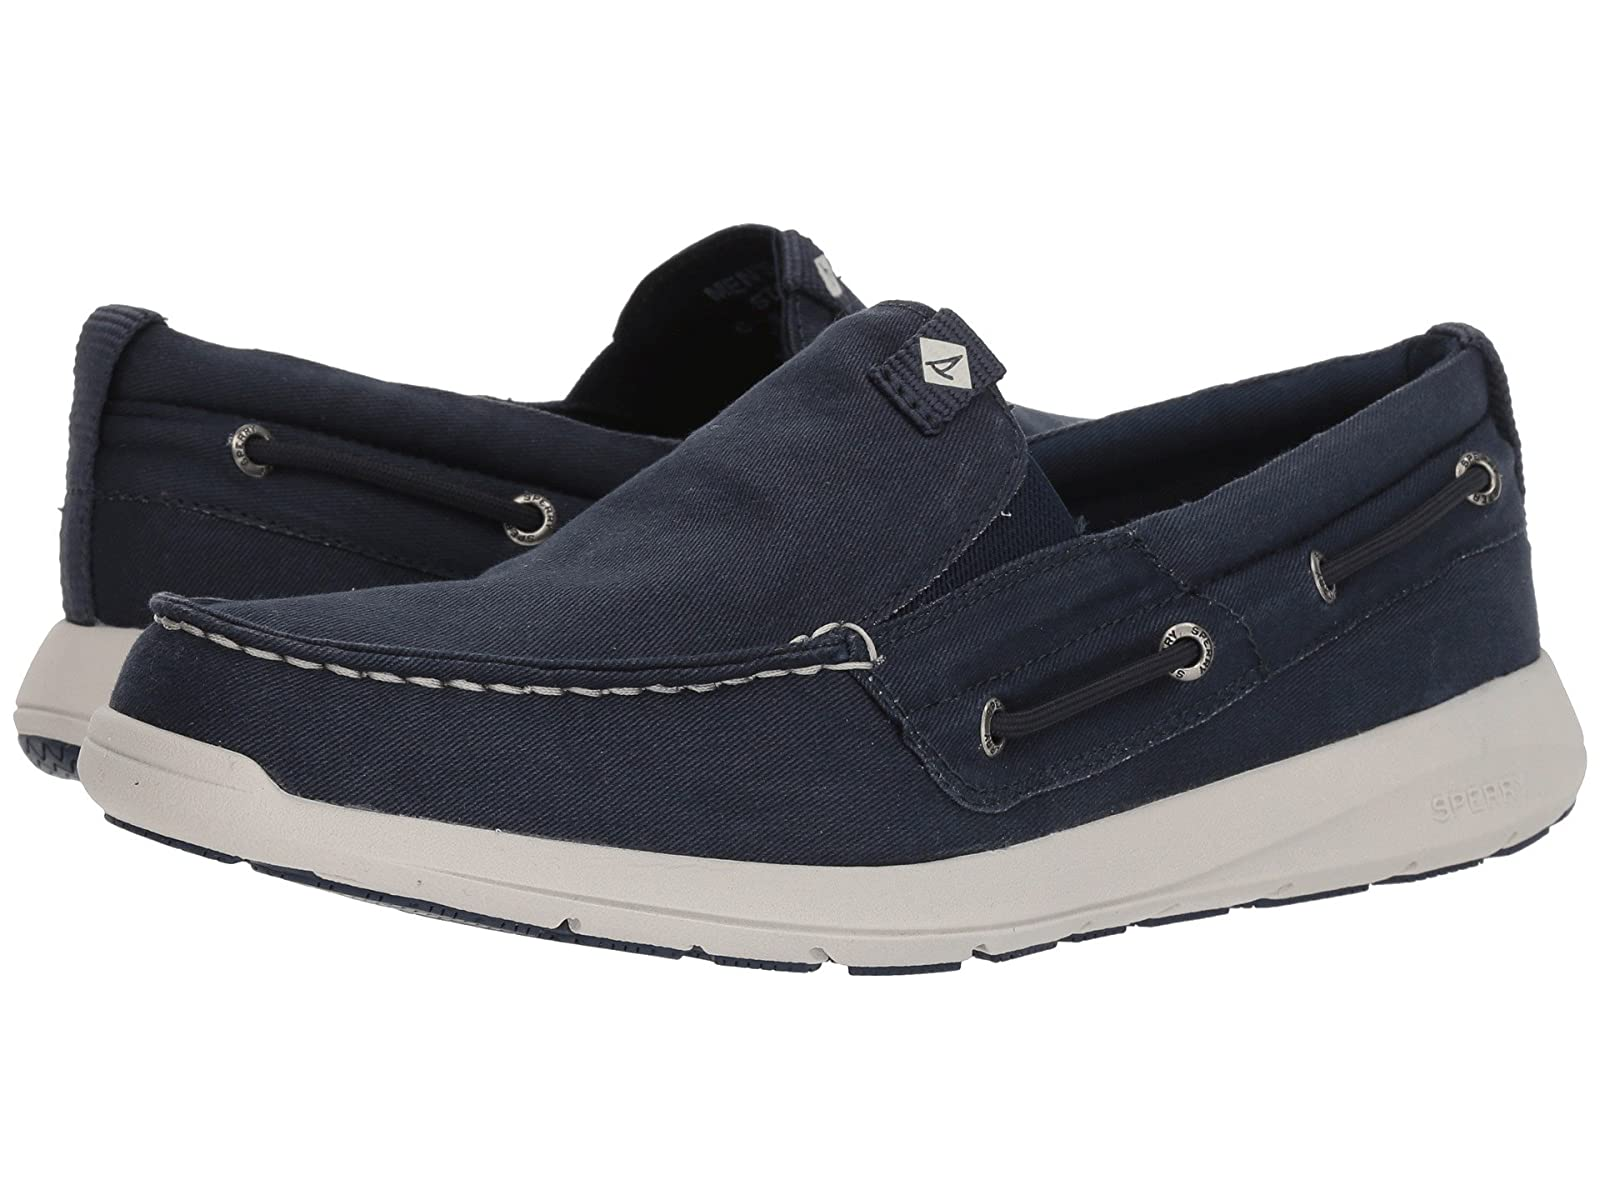 Sperry Sojourn Slip-On SWCheap and distinctive eye-catching shoes